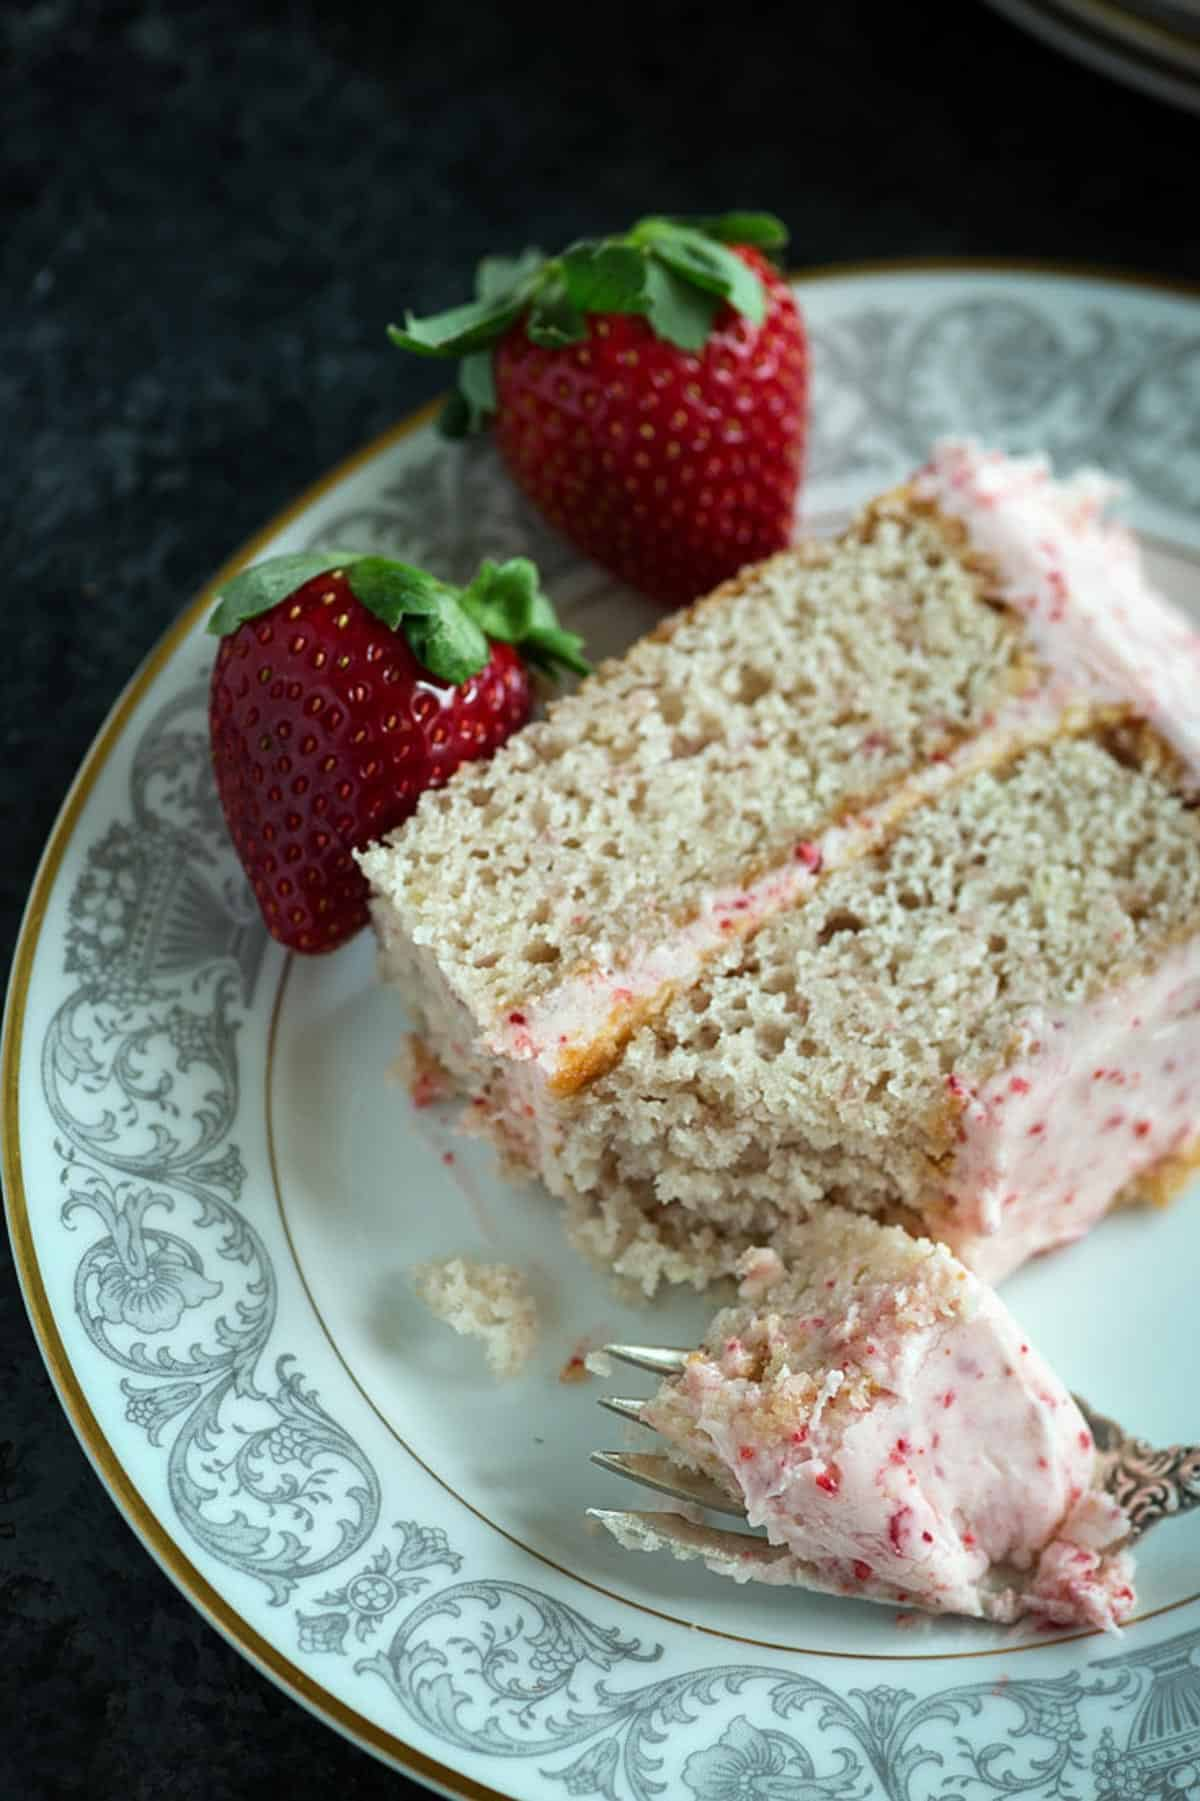 A bite of strawberry cake on a plate